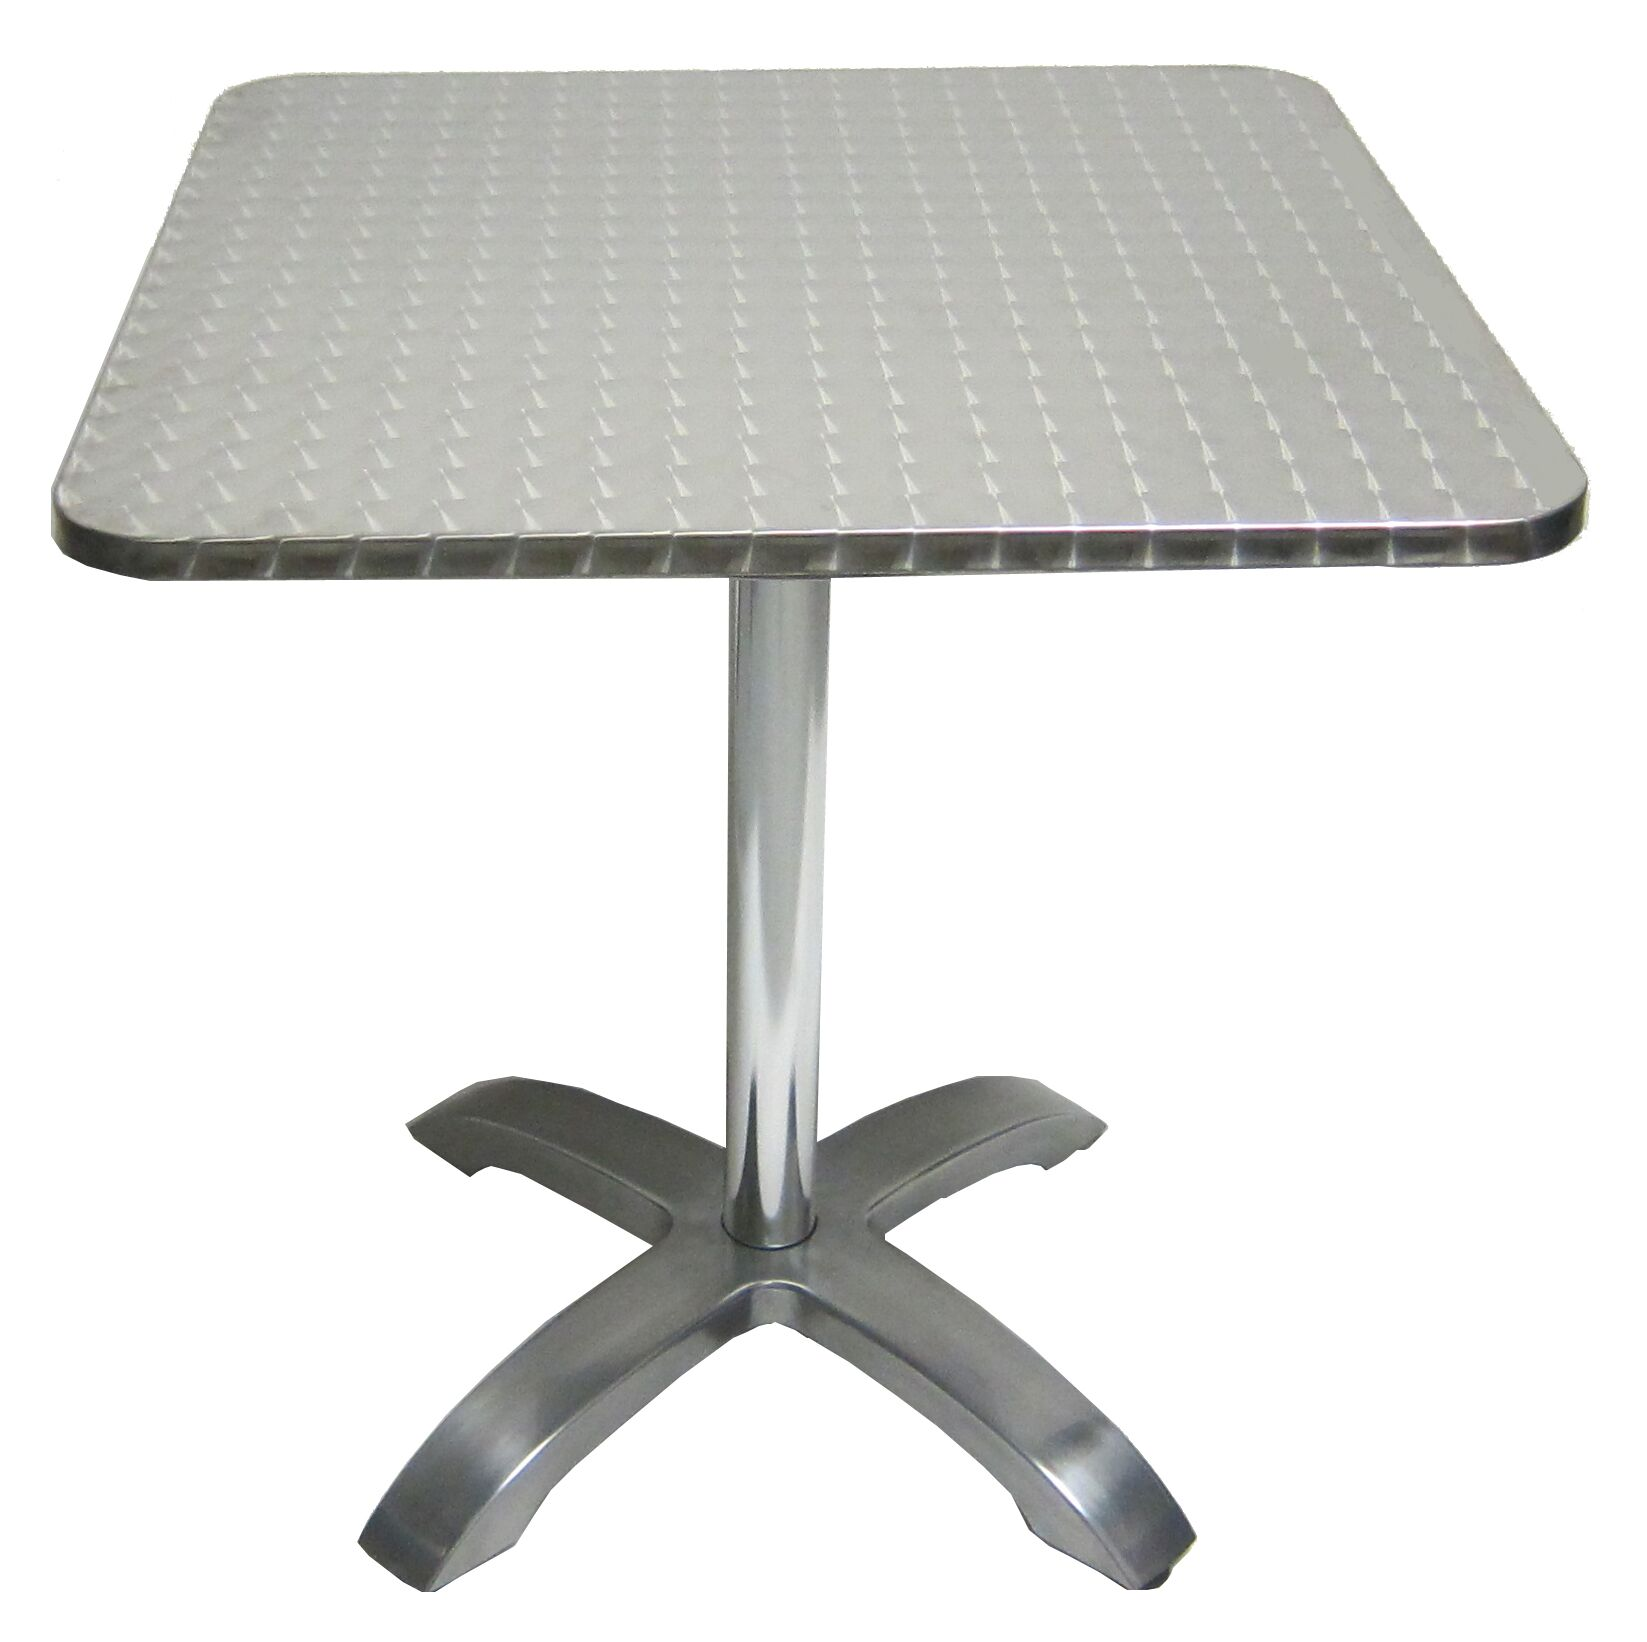 Stainless Aluminum Square Indoor Outdoor Bar Table Picture 1